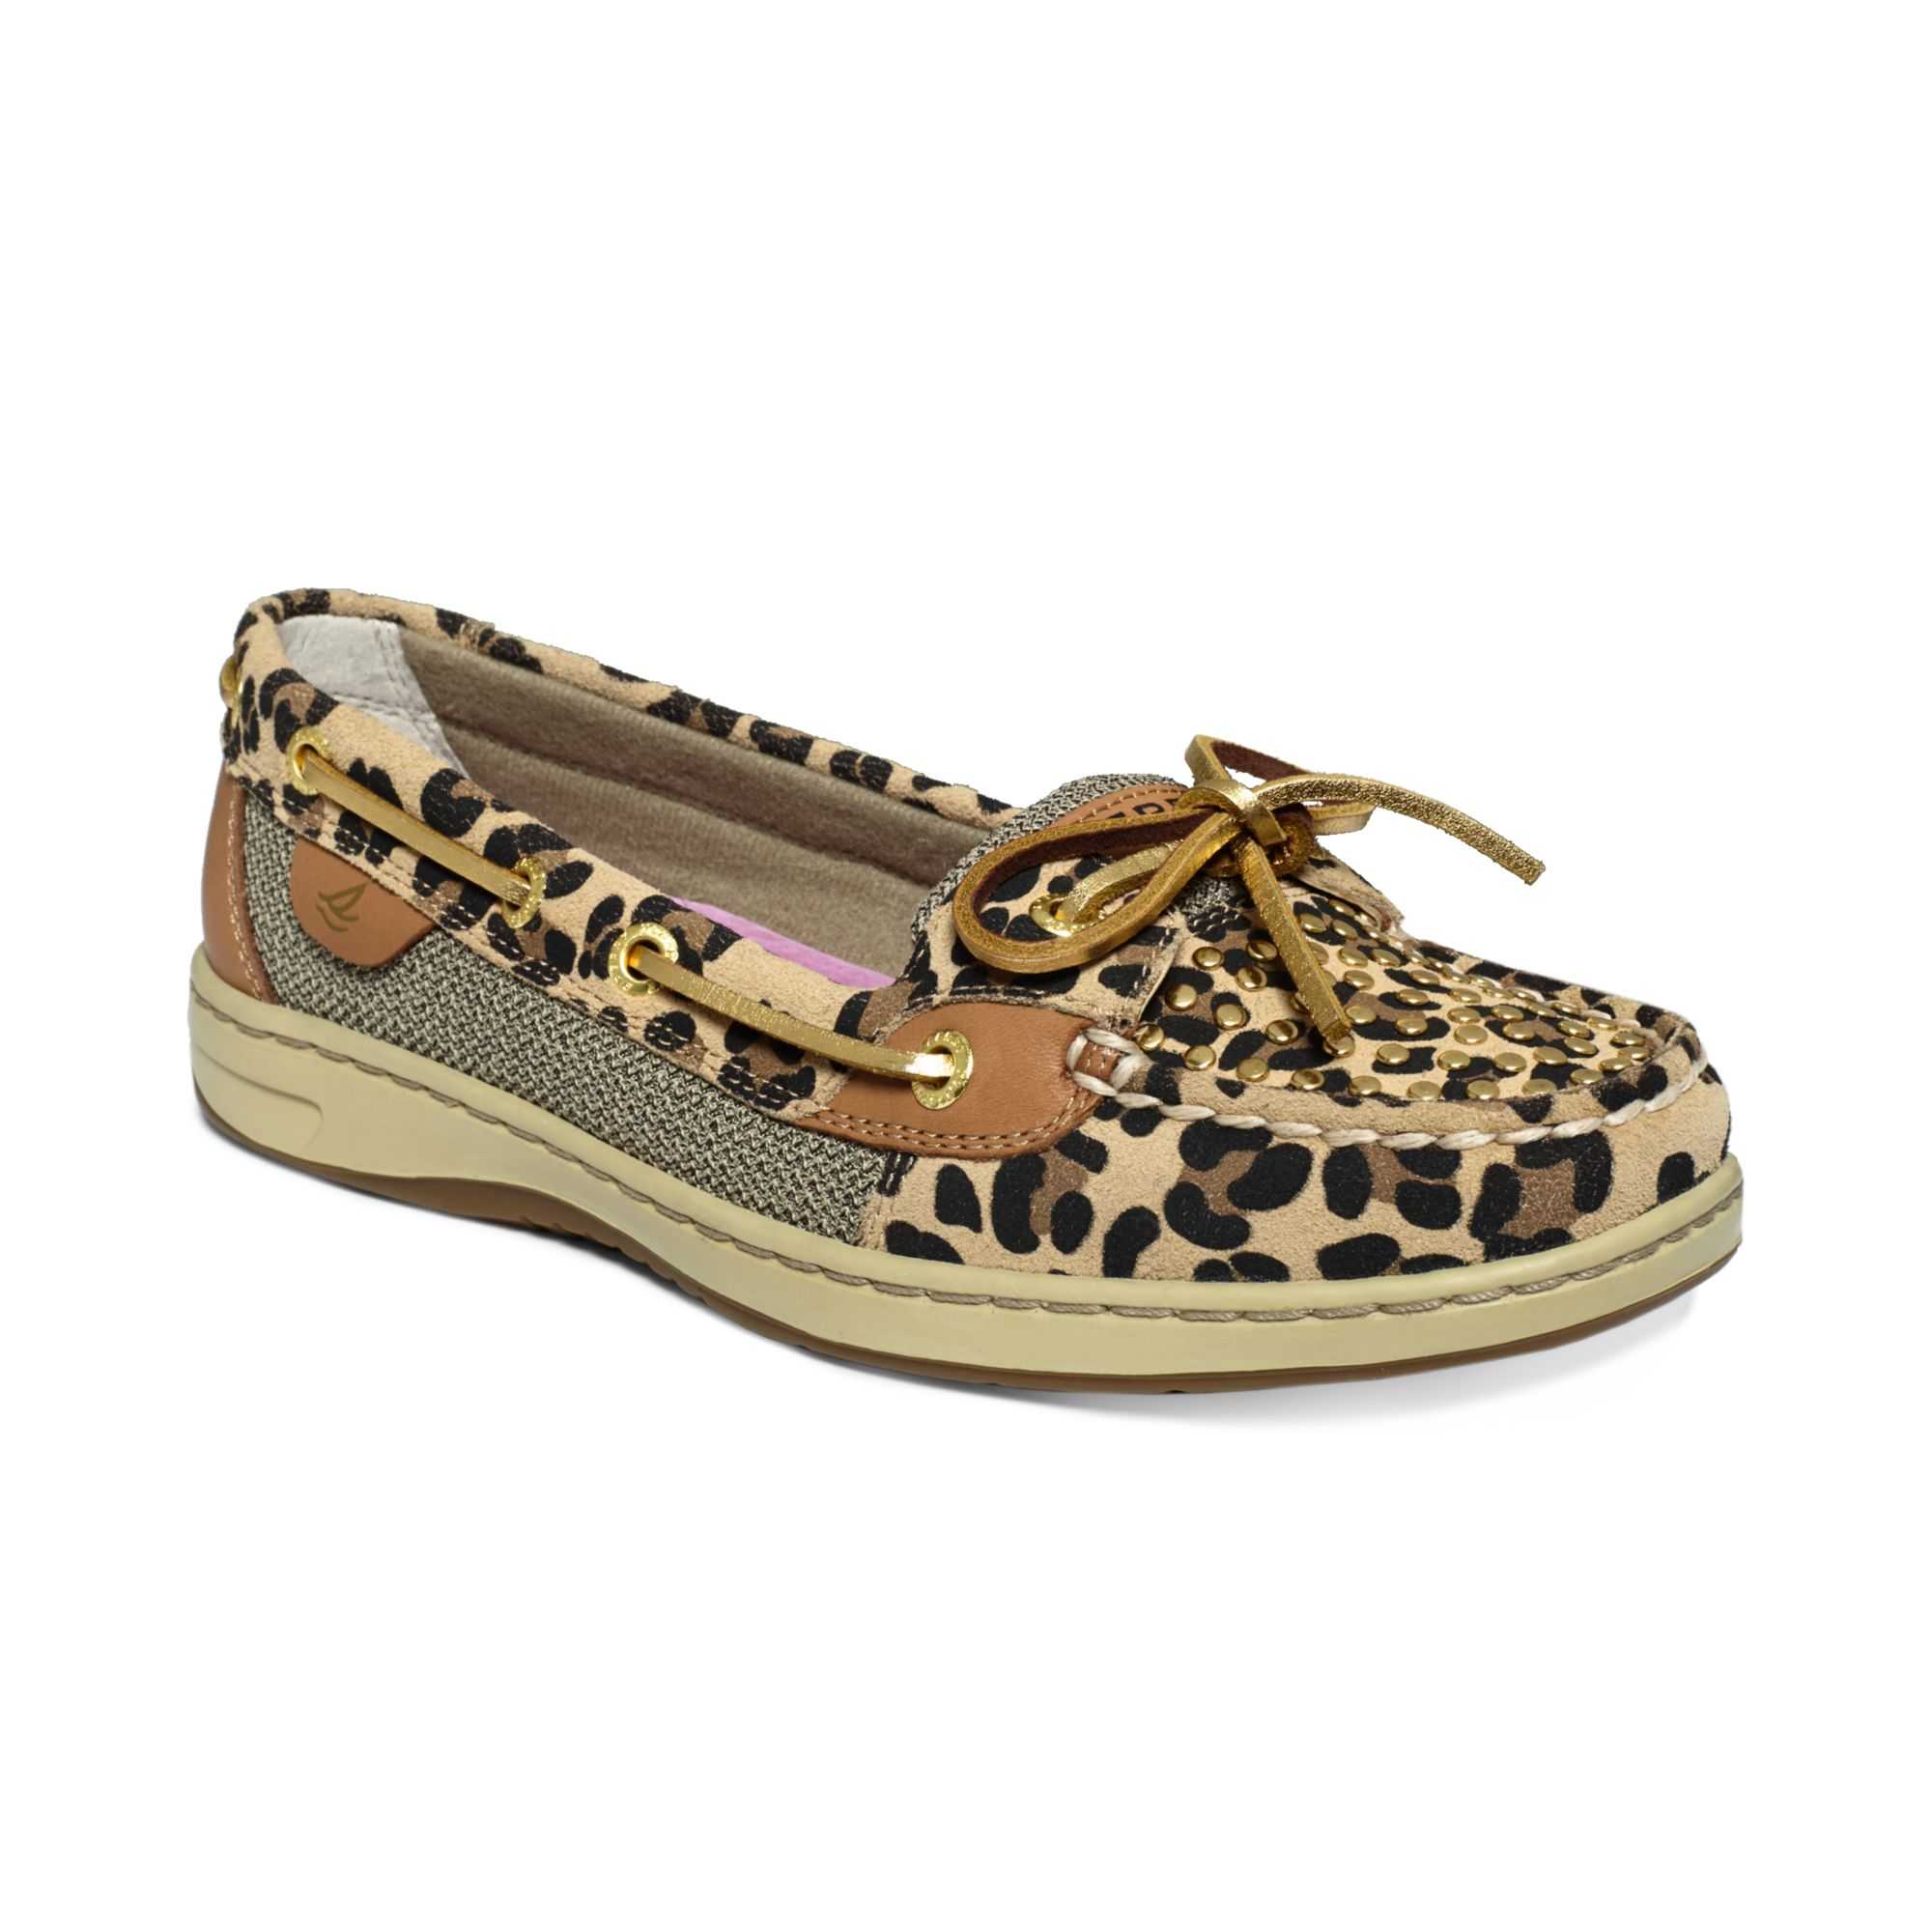 Free shipping on Naturalizer shoes for women at busqueamar.tk Select pumps, flats, sandals and more. Check out our entire collection.